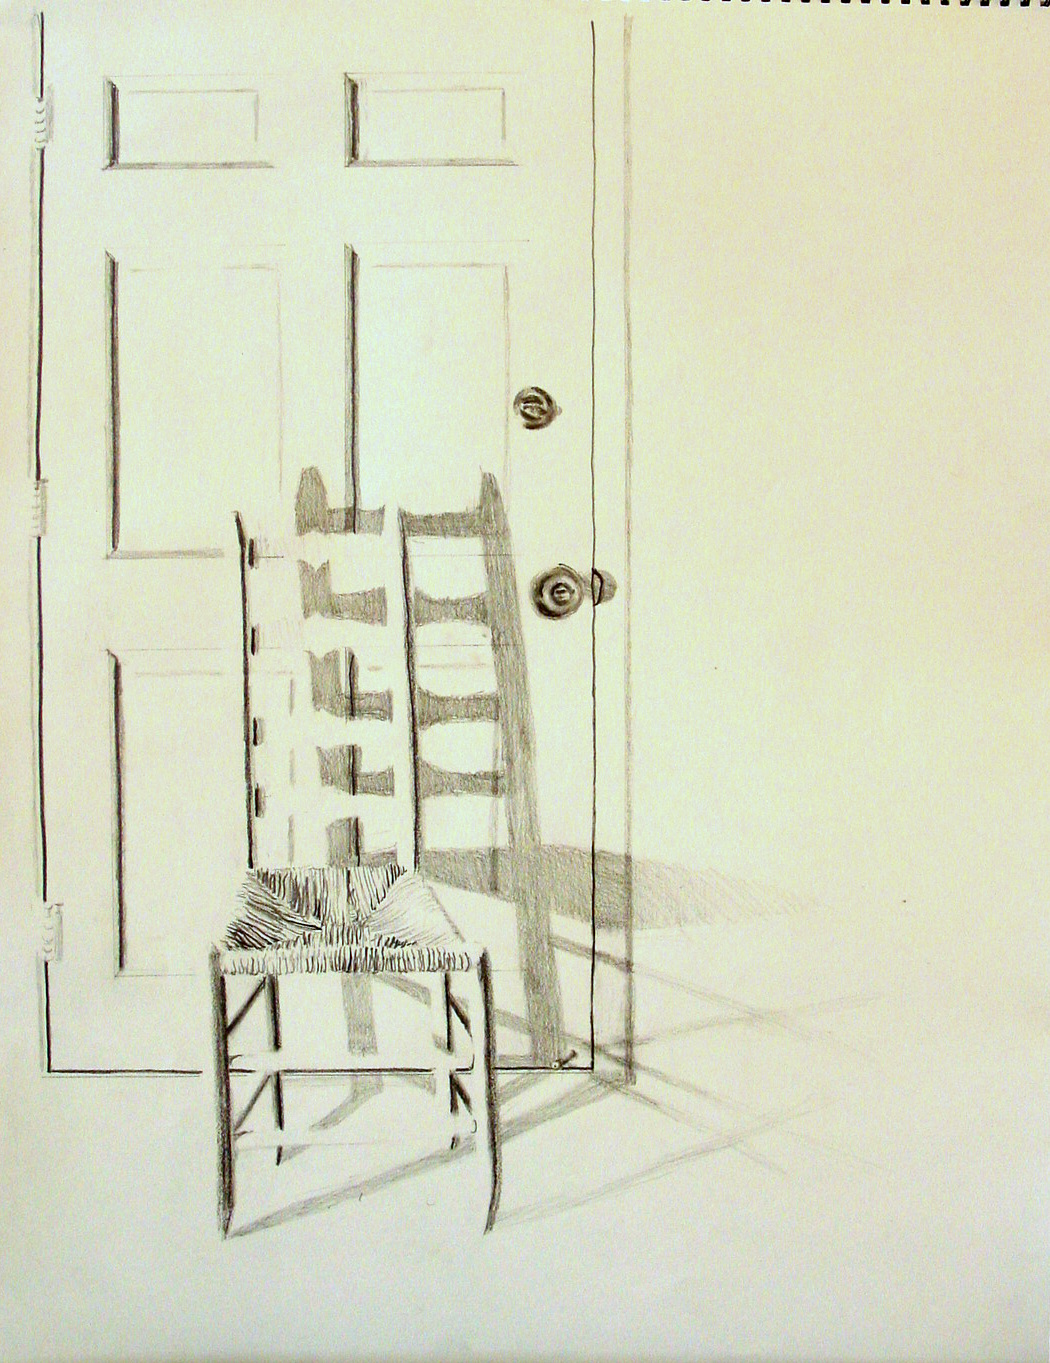 Door pencil drawing - Chair And Door Still Life Pencil 18x24 Jessica